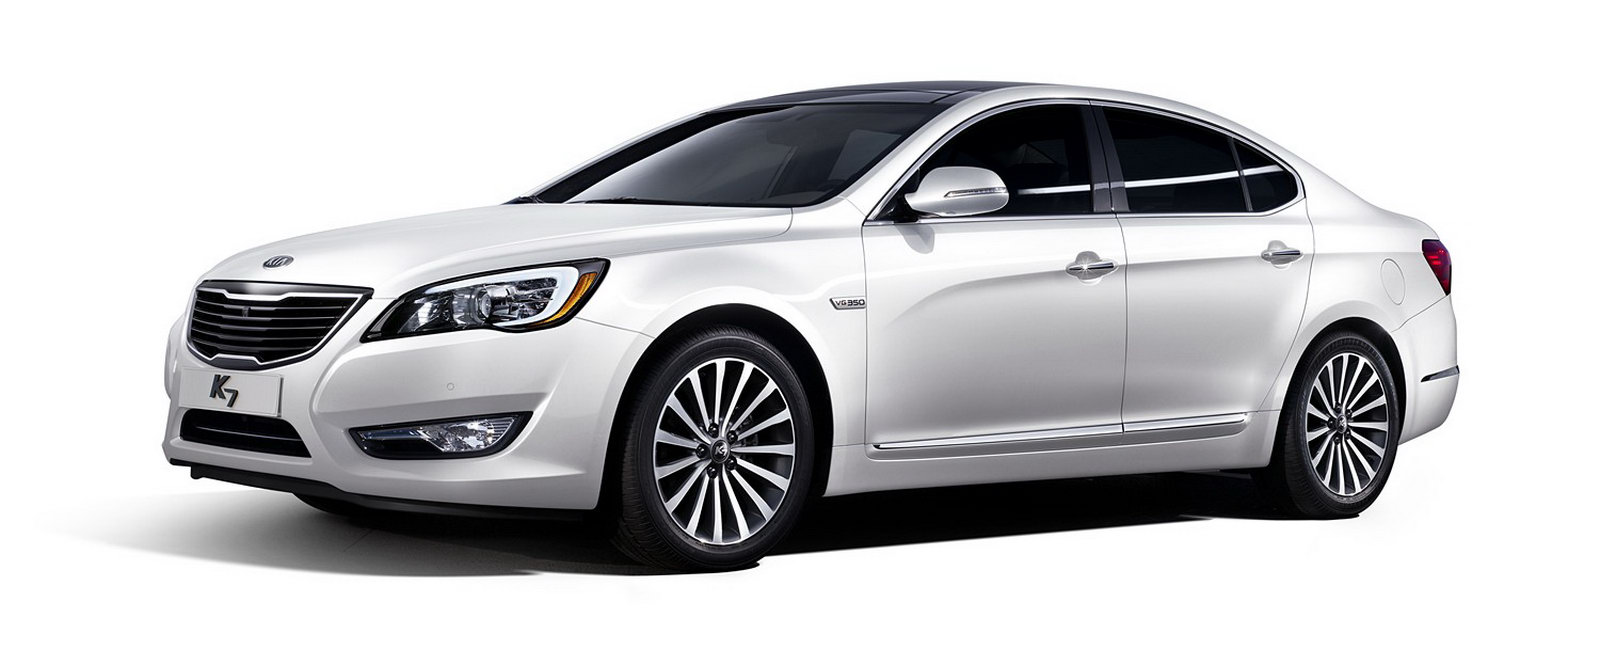 Kia Cadenza 2011 >> 2011 Kia Cadenza New High Res Photo Gallery And Details